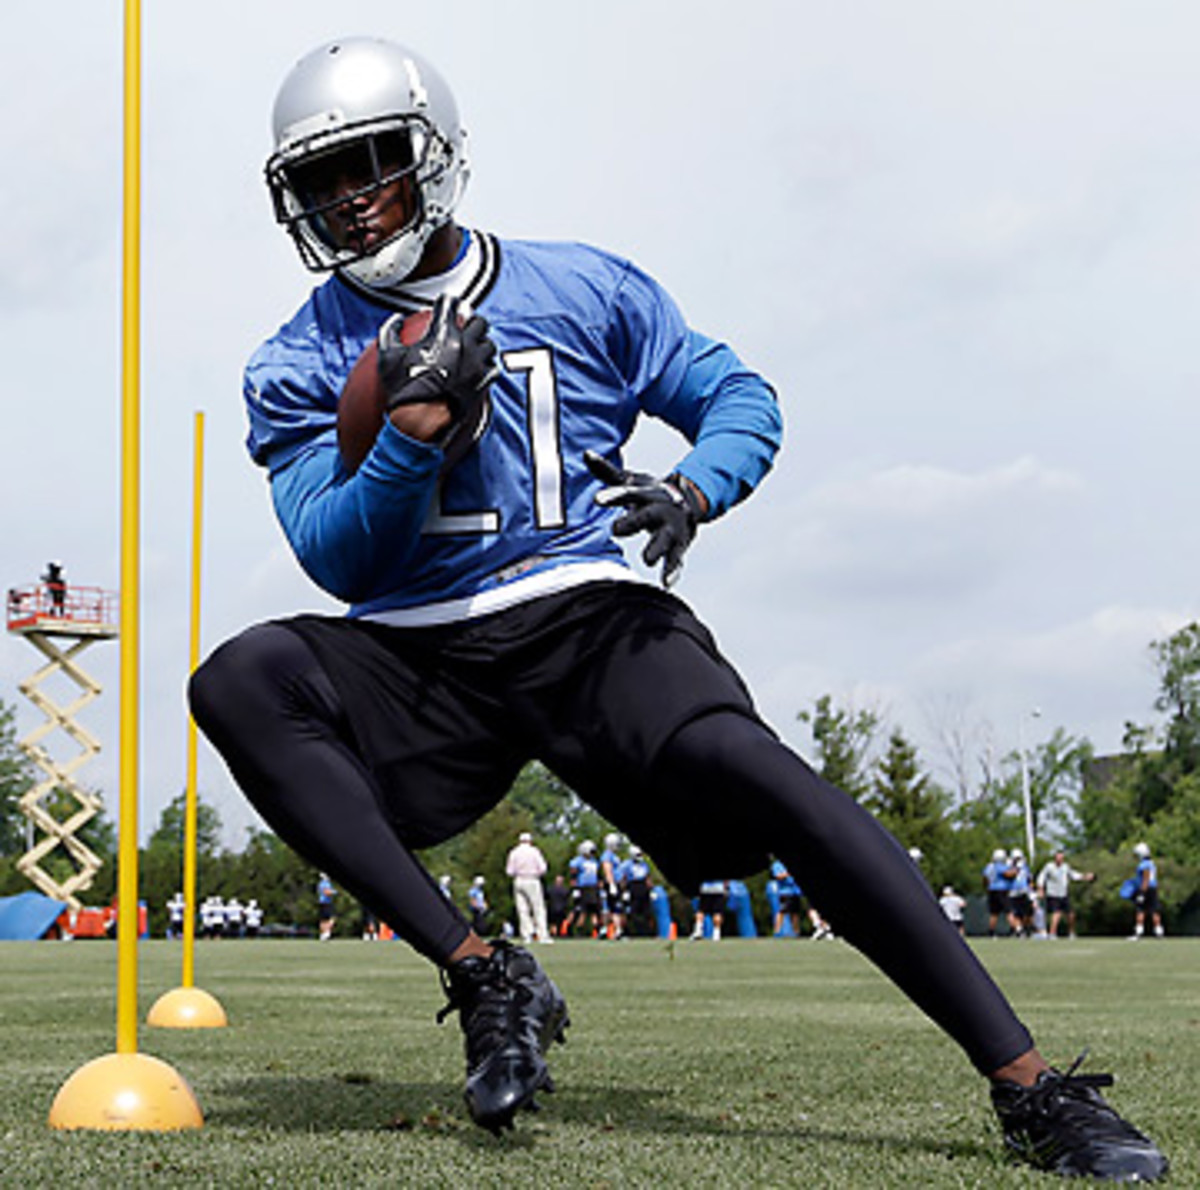 Reggie Bush has the skillset to diversify the Lions' offense and help them regain what they lost due to Jahvid Best's concussion problems. (Paul Sancya/AP)